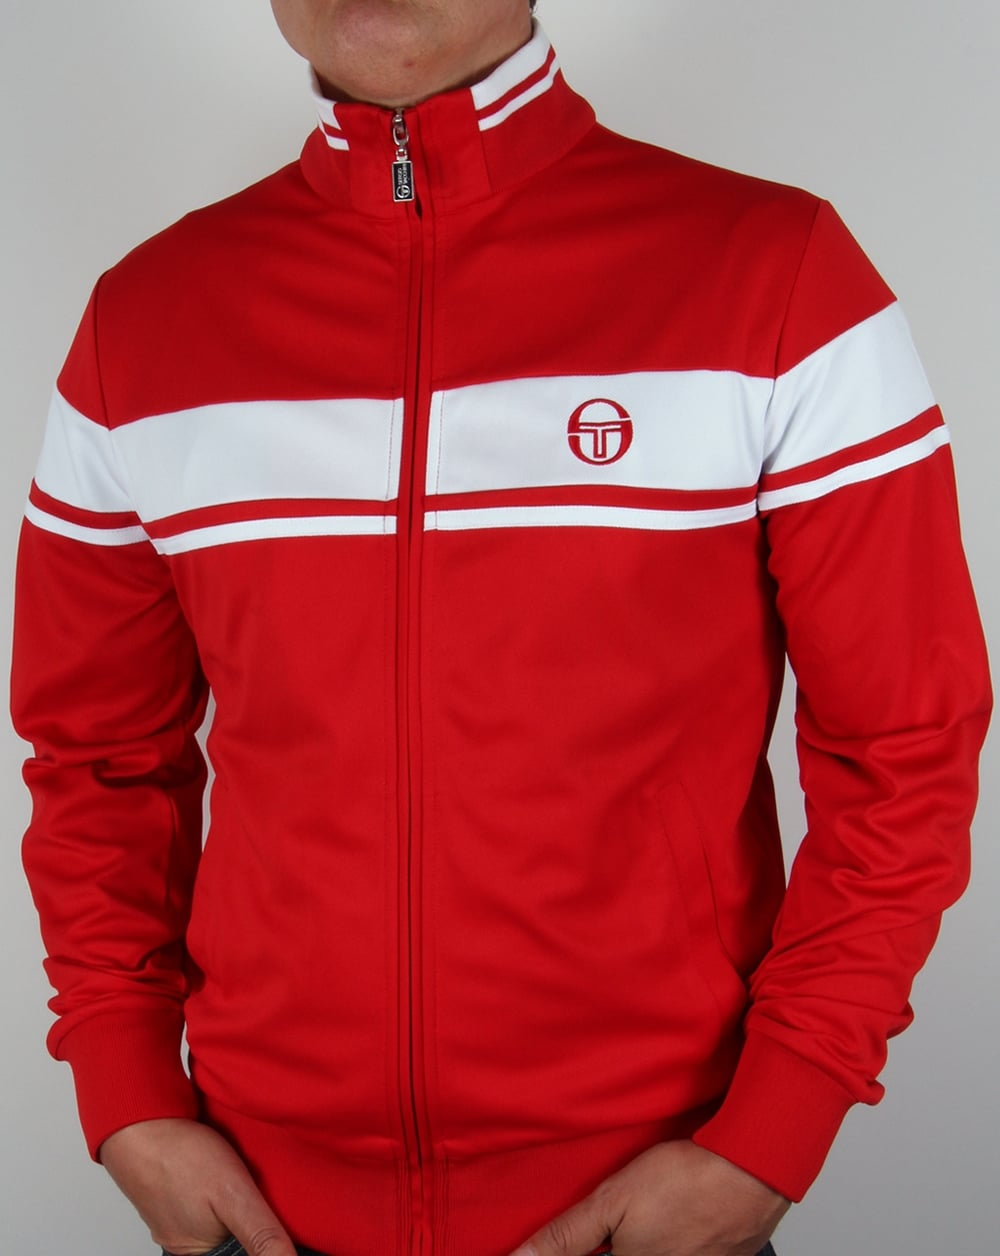 sergio tacchini masters track top red white tracksuit. Black Bedroom Furniture Sets. Home Design Ideas